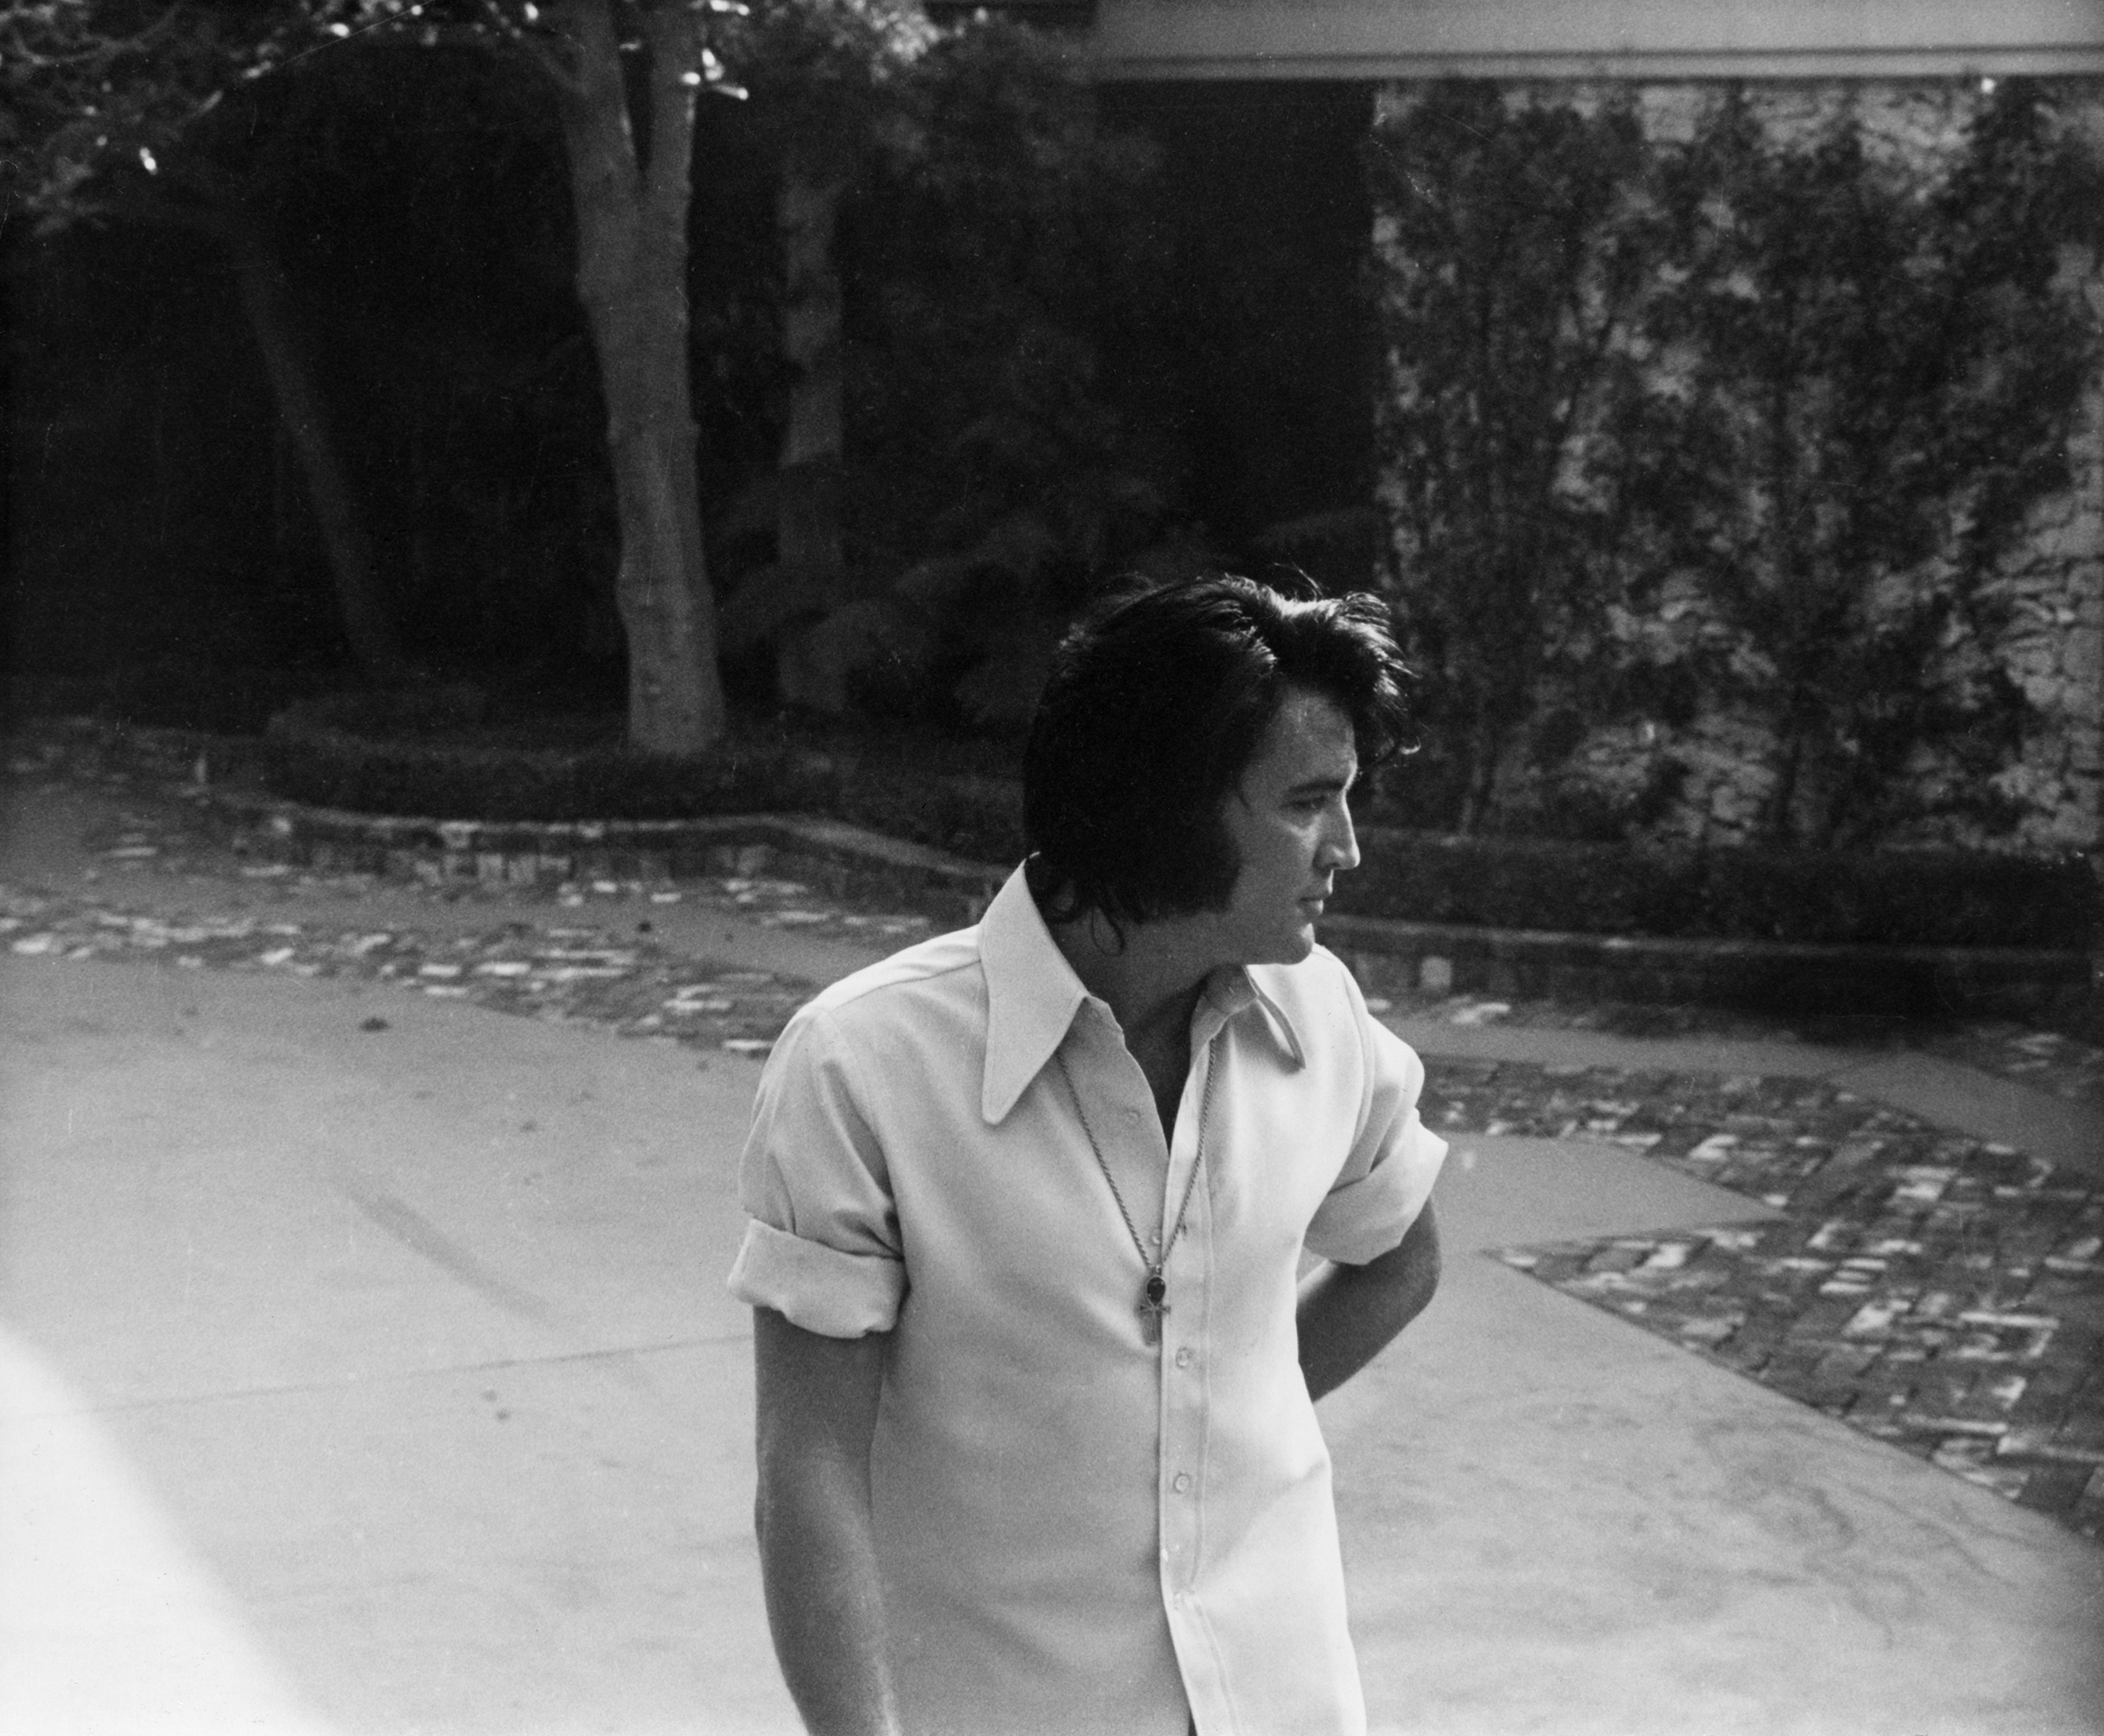 Elvis Presley in his driveway                                at Graceland, circa 1970s.